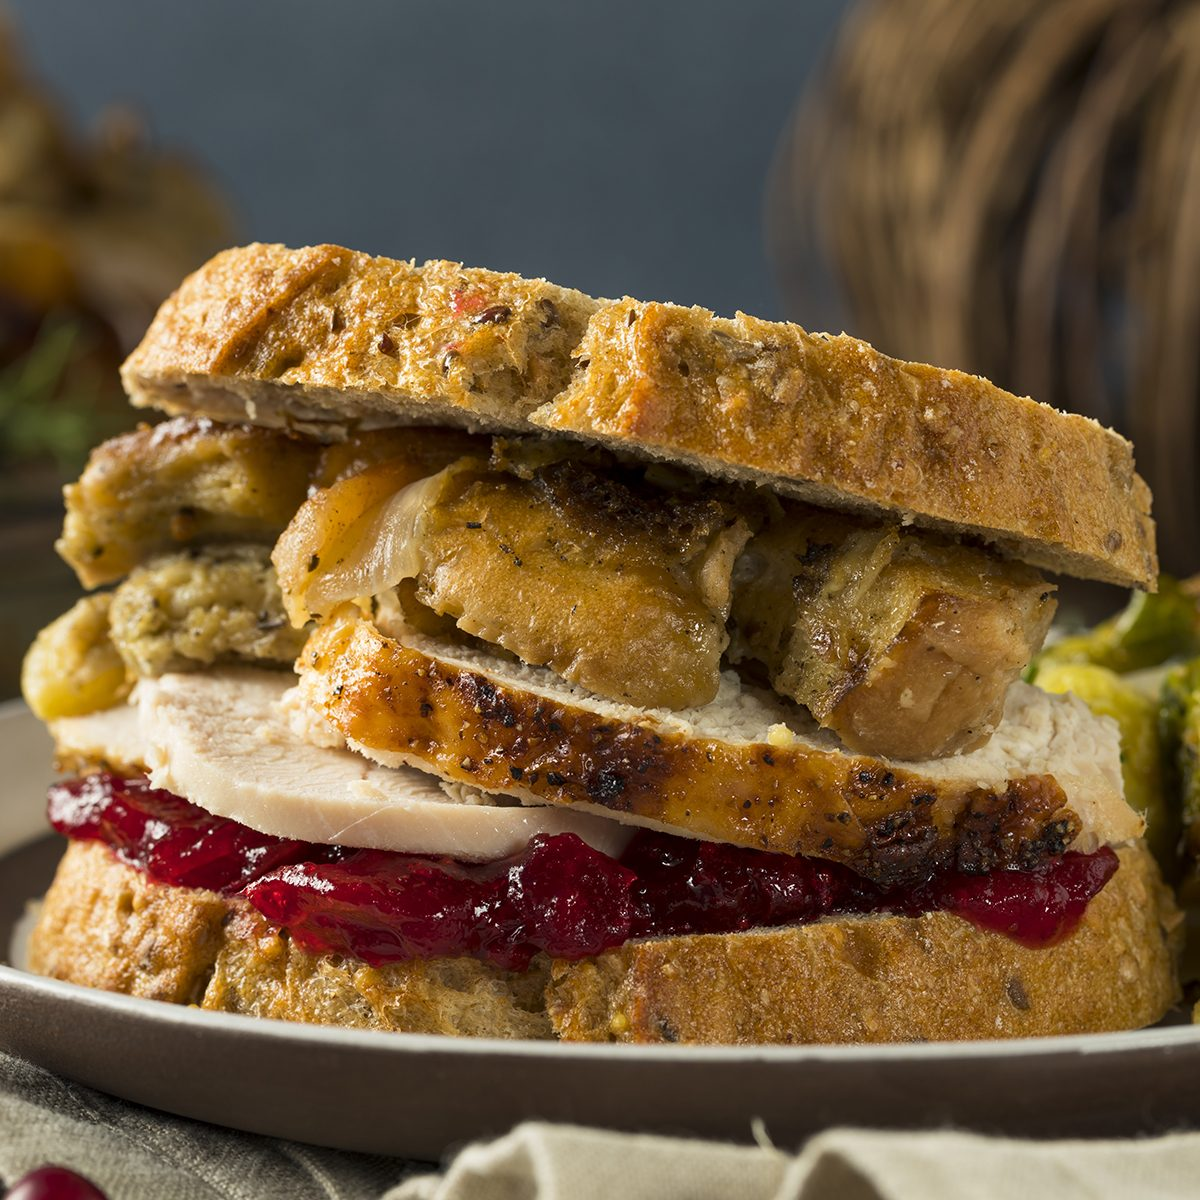 Homemade Thanksgiving Leftover Turkey Sandwich with Stuffing and Cranberry